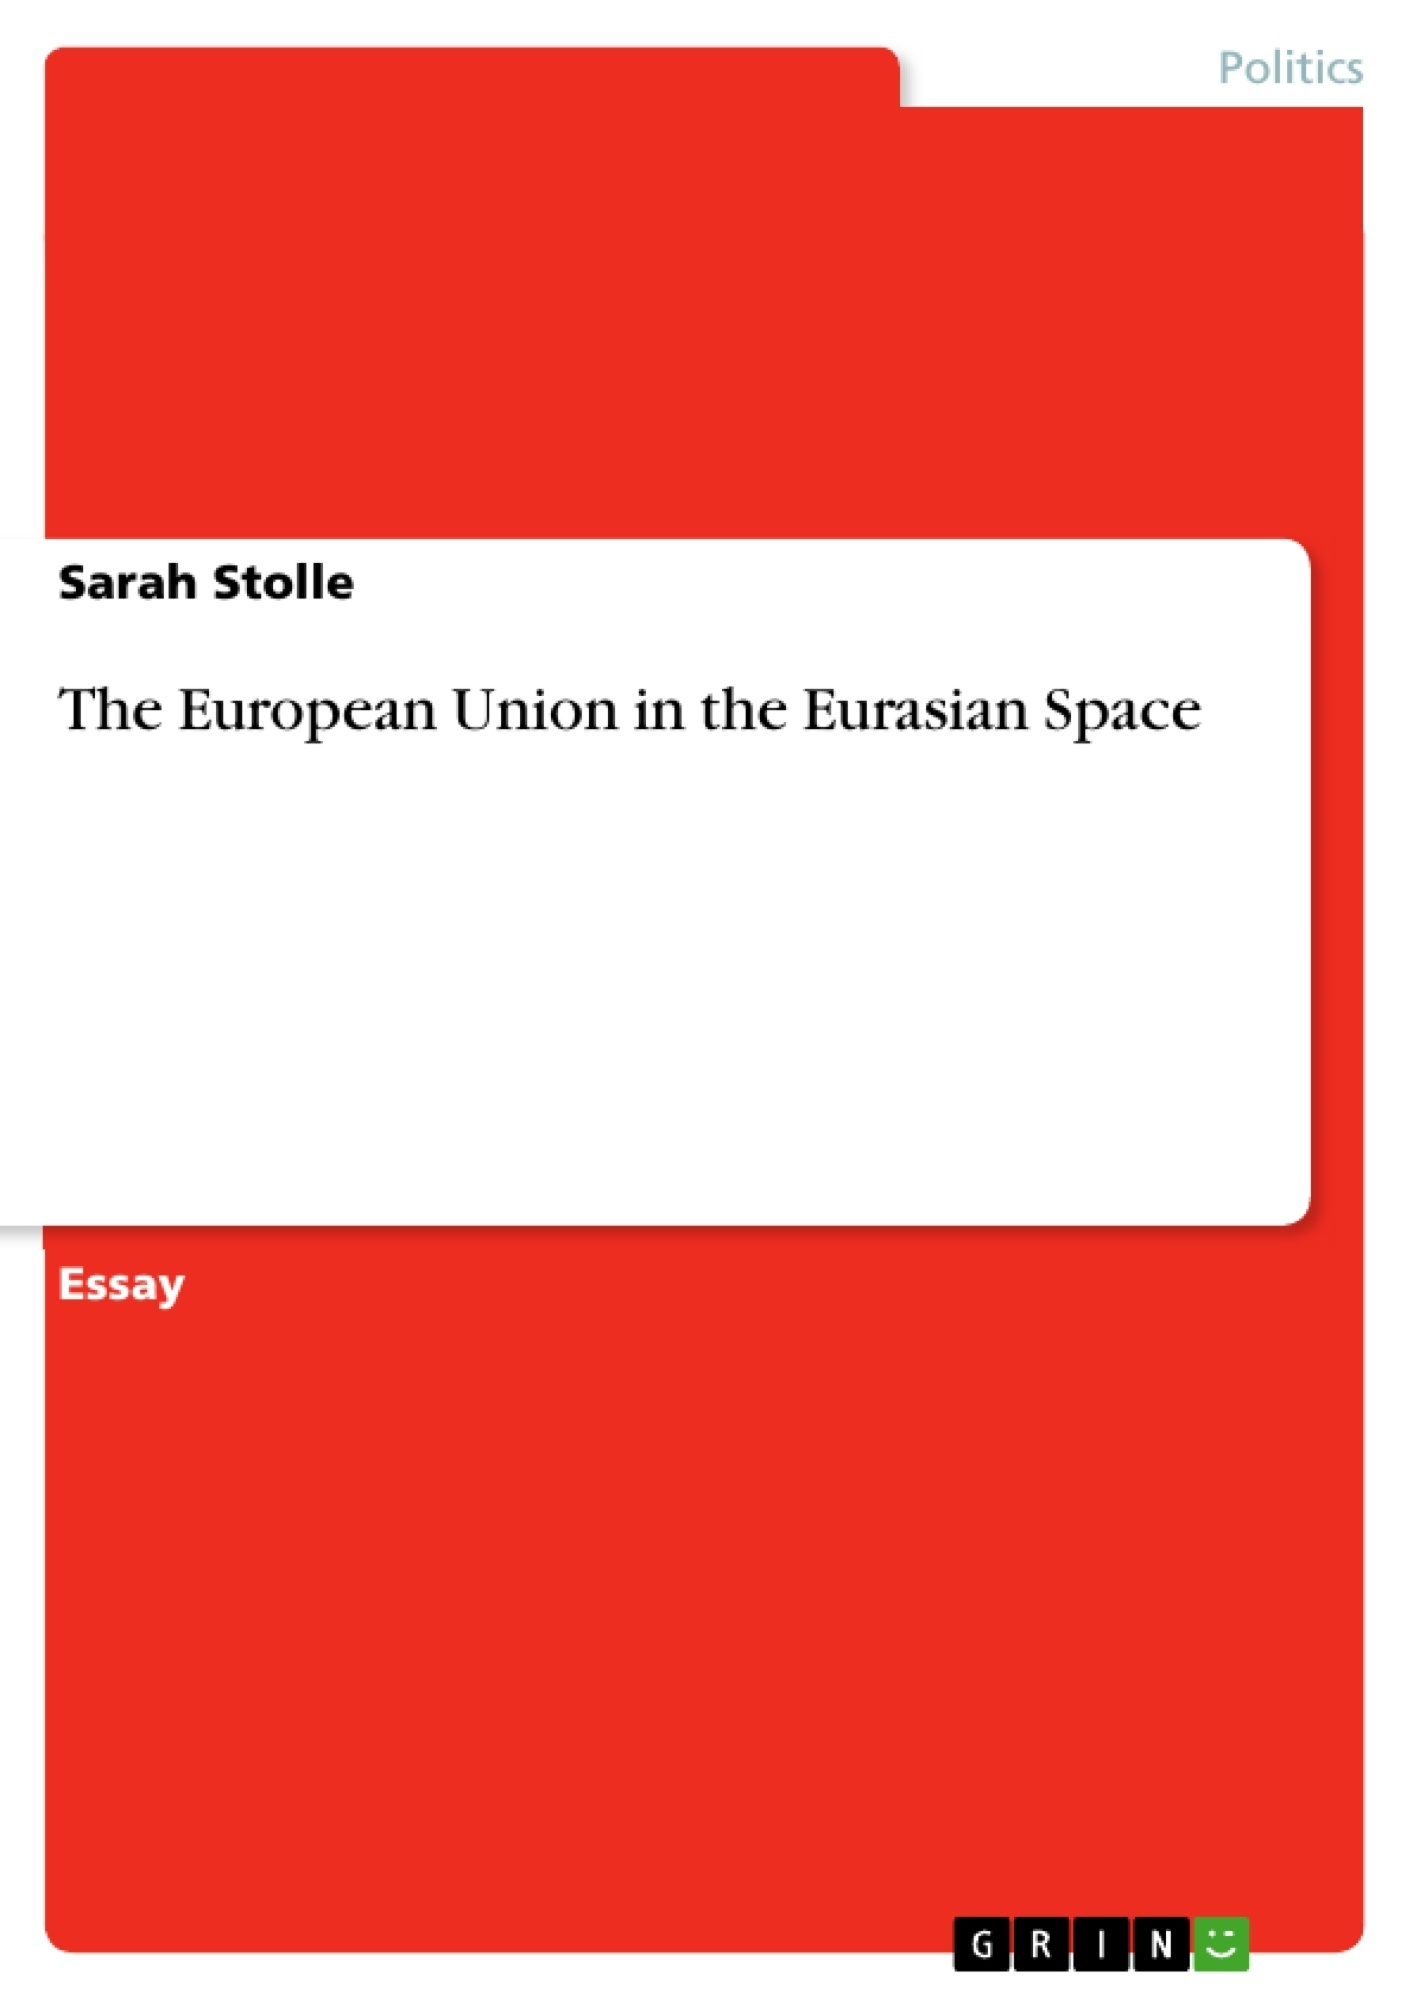 Title: The European Union in the Eurasian Space